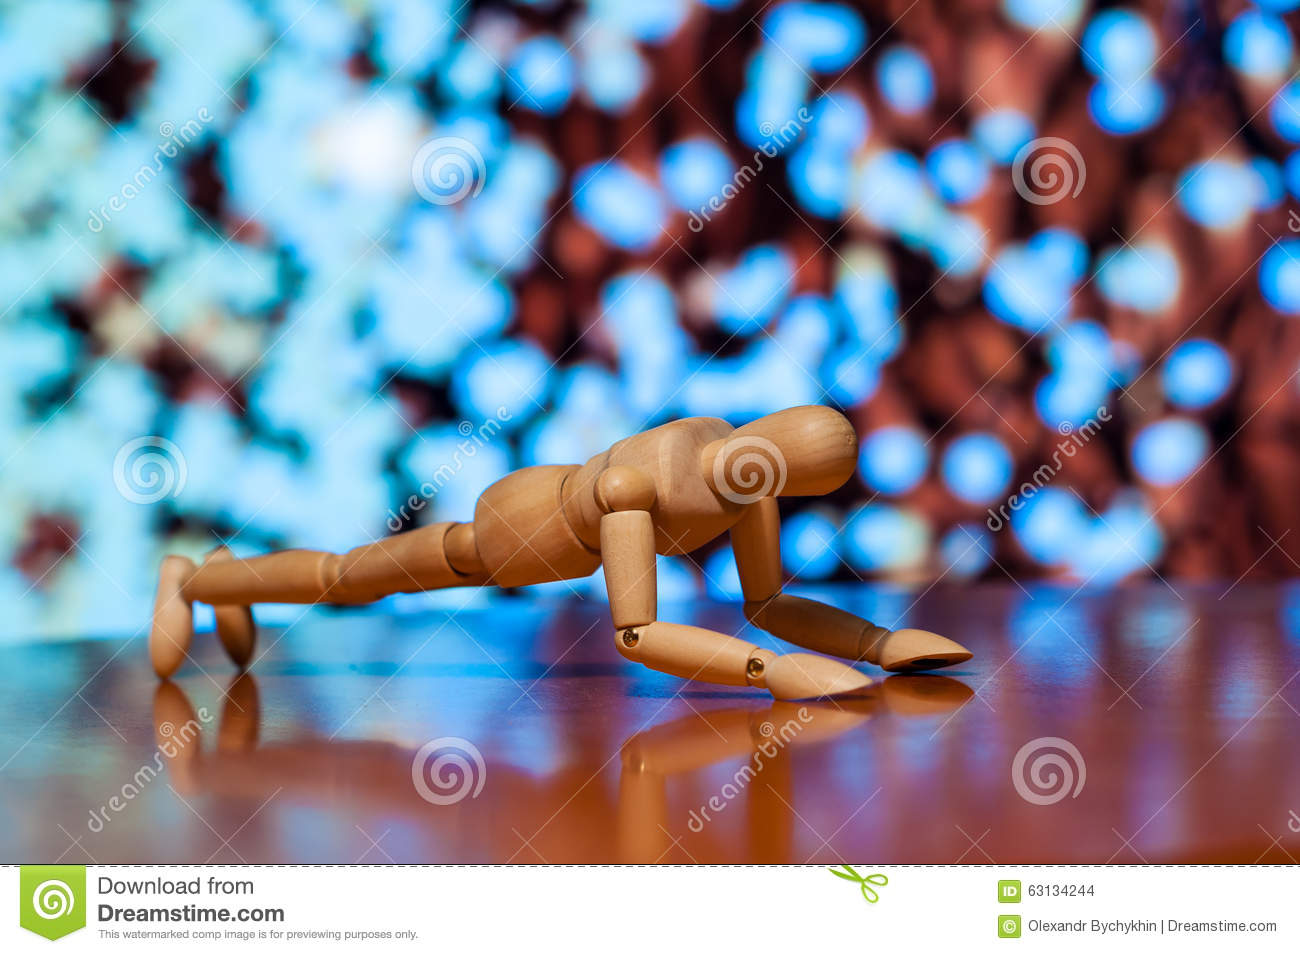 Wooden dummy, mannequin or man figurine exercising